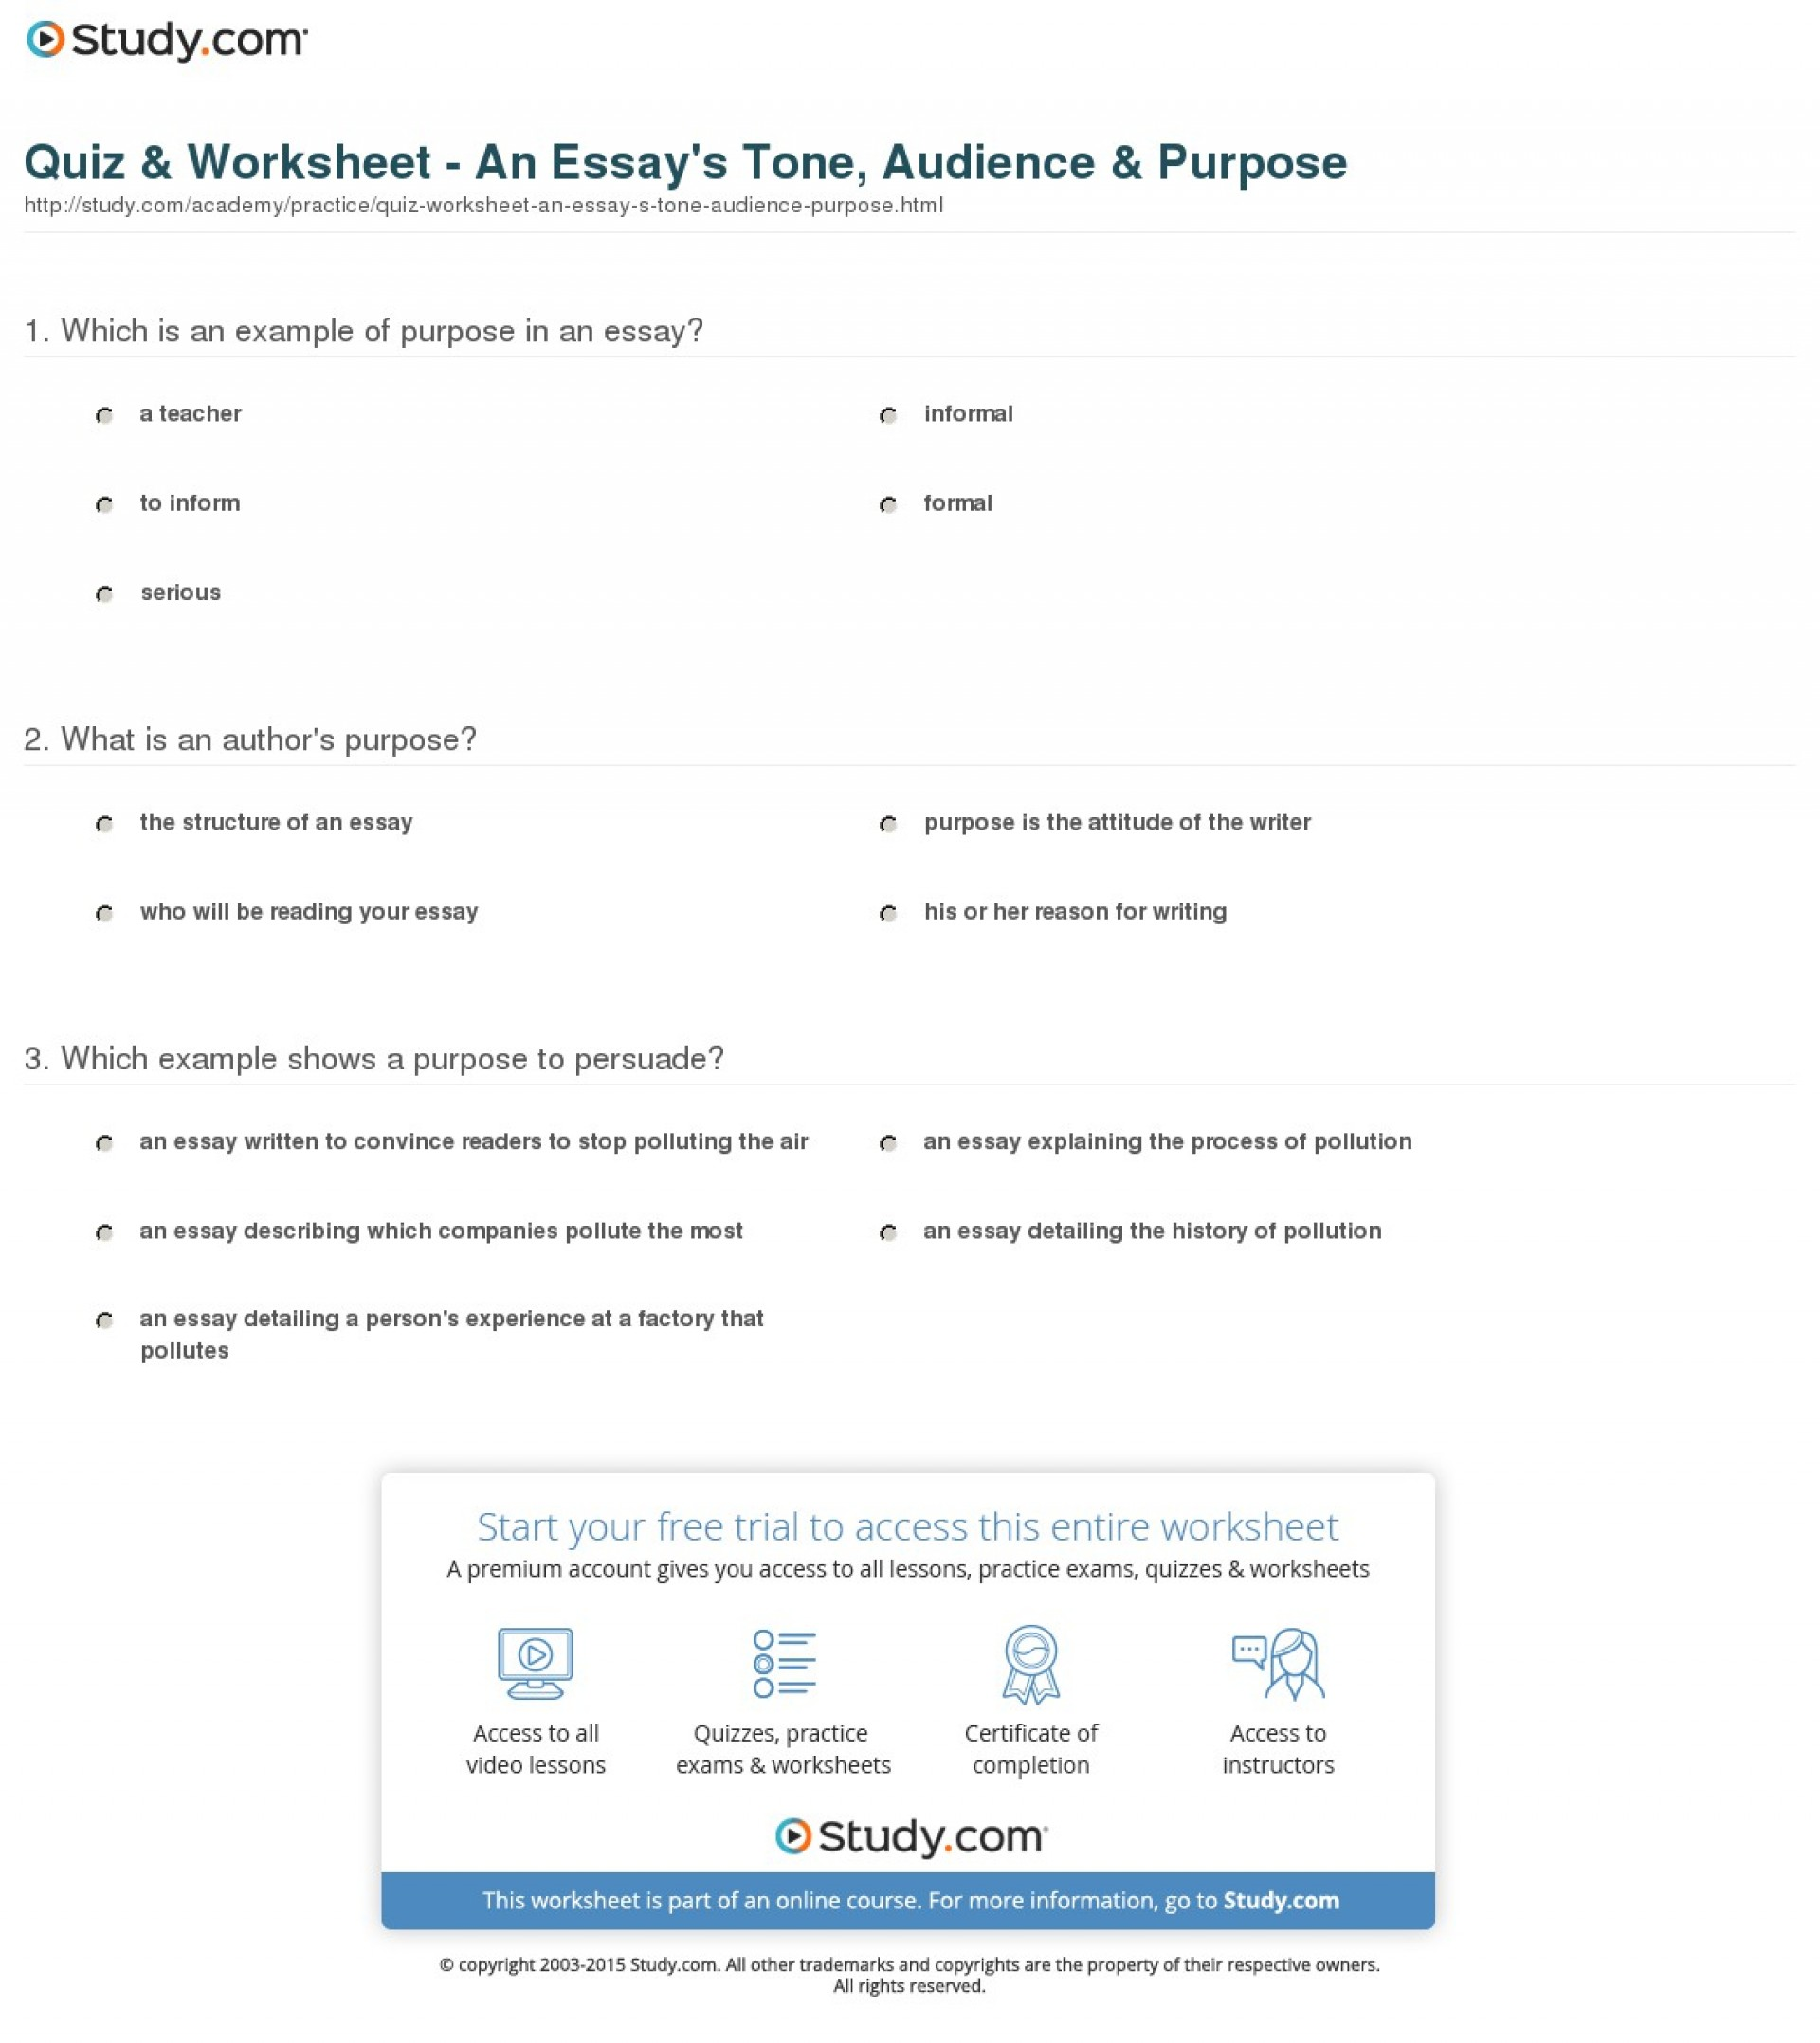 009 Quiz Worksheet An Essay S Tone Audience Purpose Example Striking Of Expository Outline For Argumentative 1920